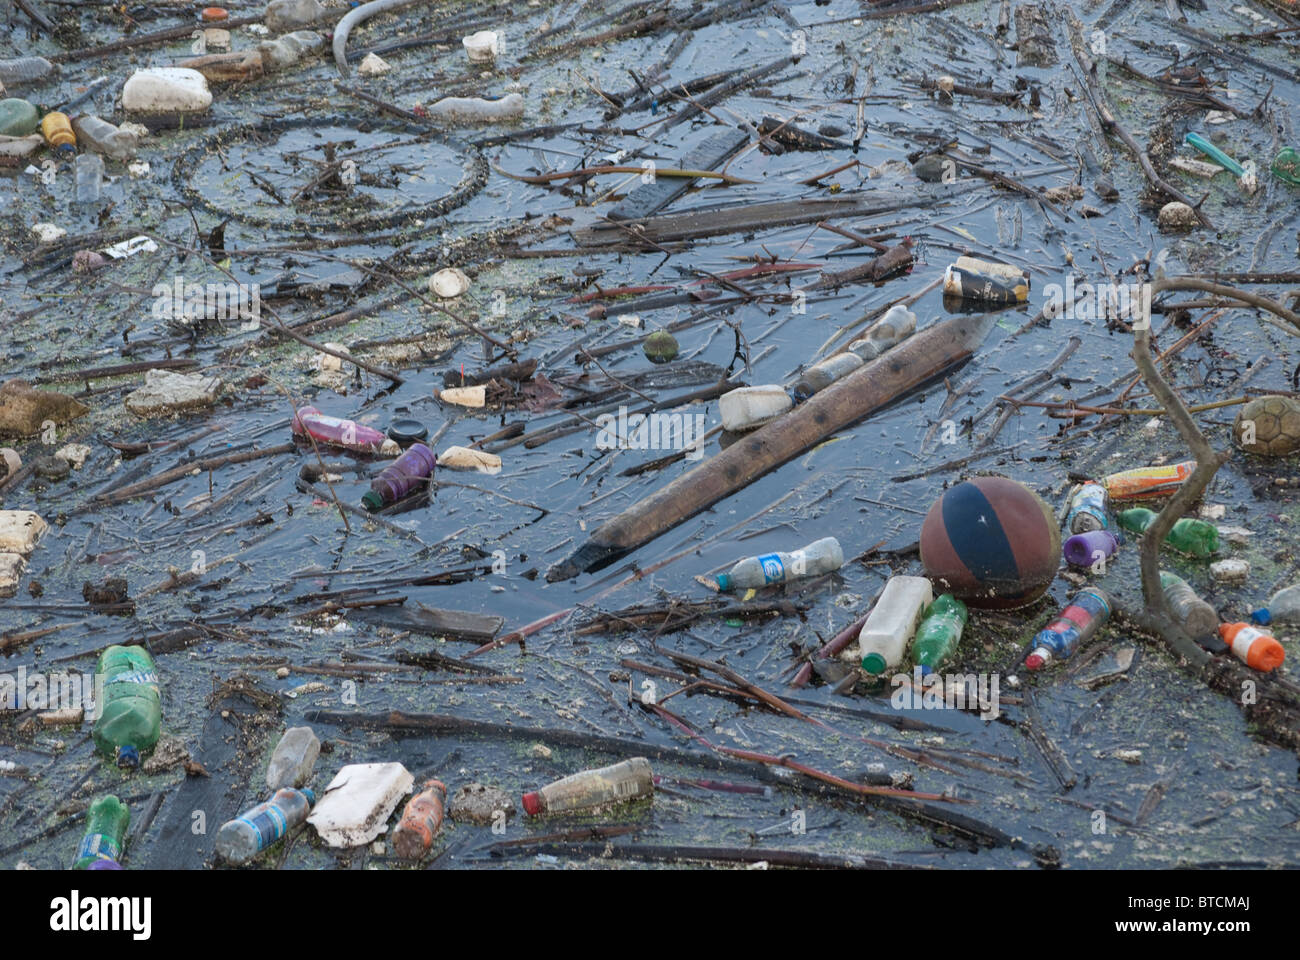 Flotsam and jetsam  or filth and pollution - Stock Image